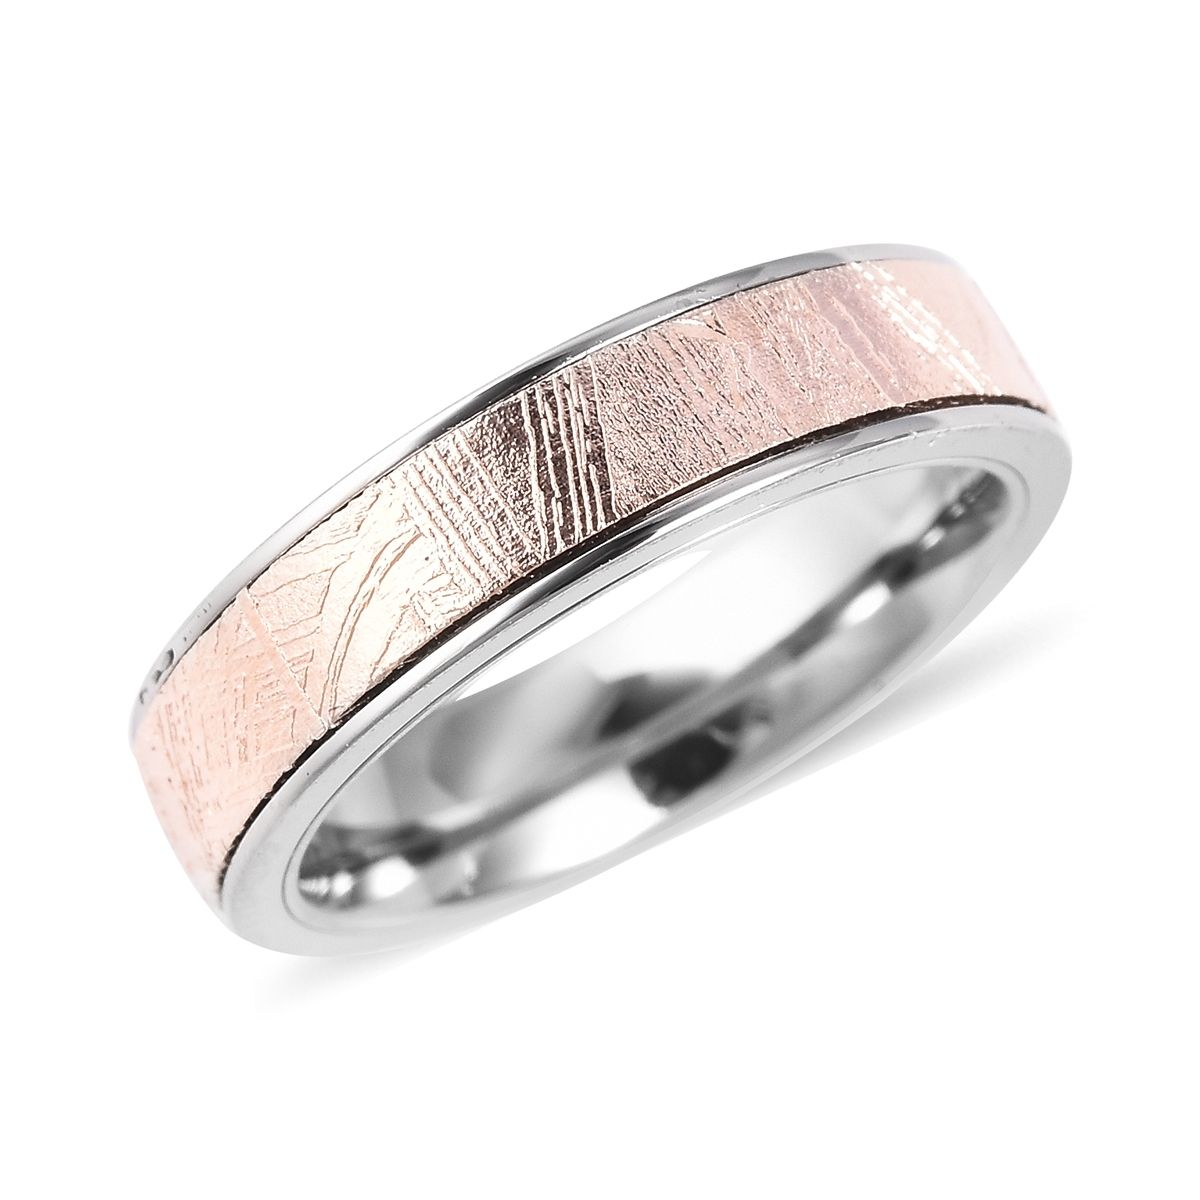 Show your taste for fashion with this beautiful band ring